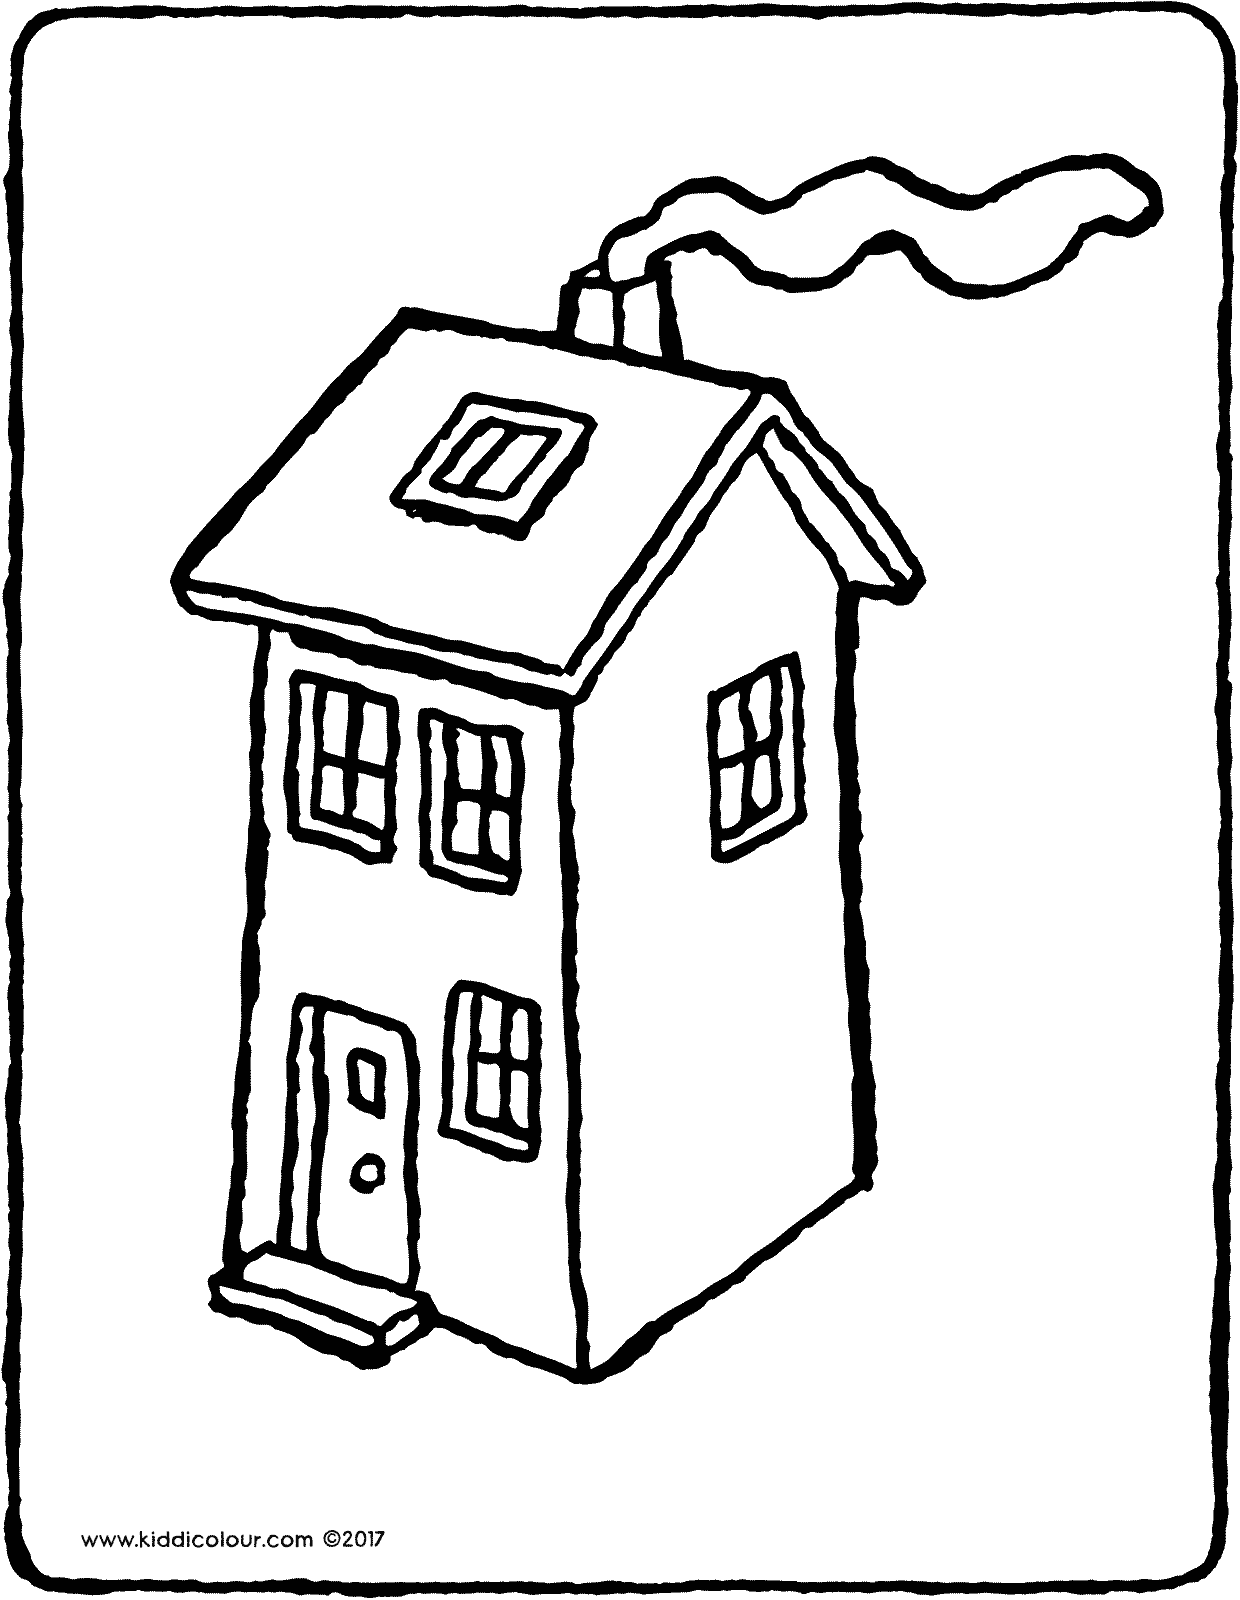 coloring picture house house coloring pages getcoloringpagescom picture coloring house